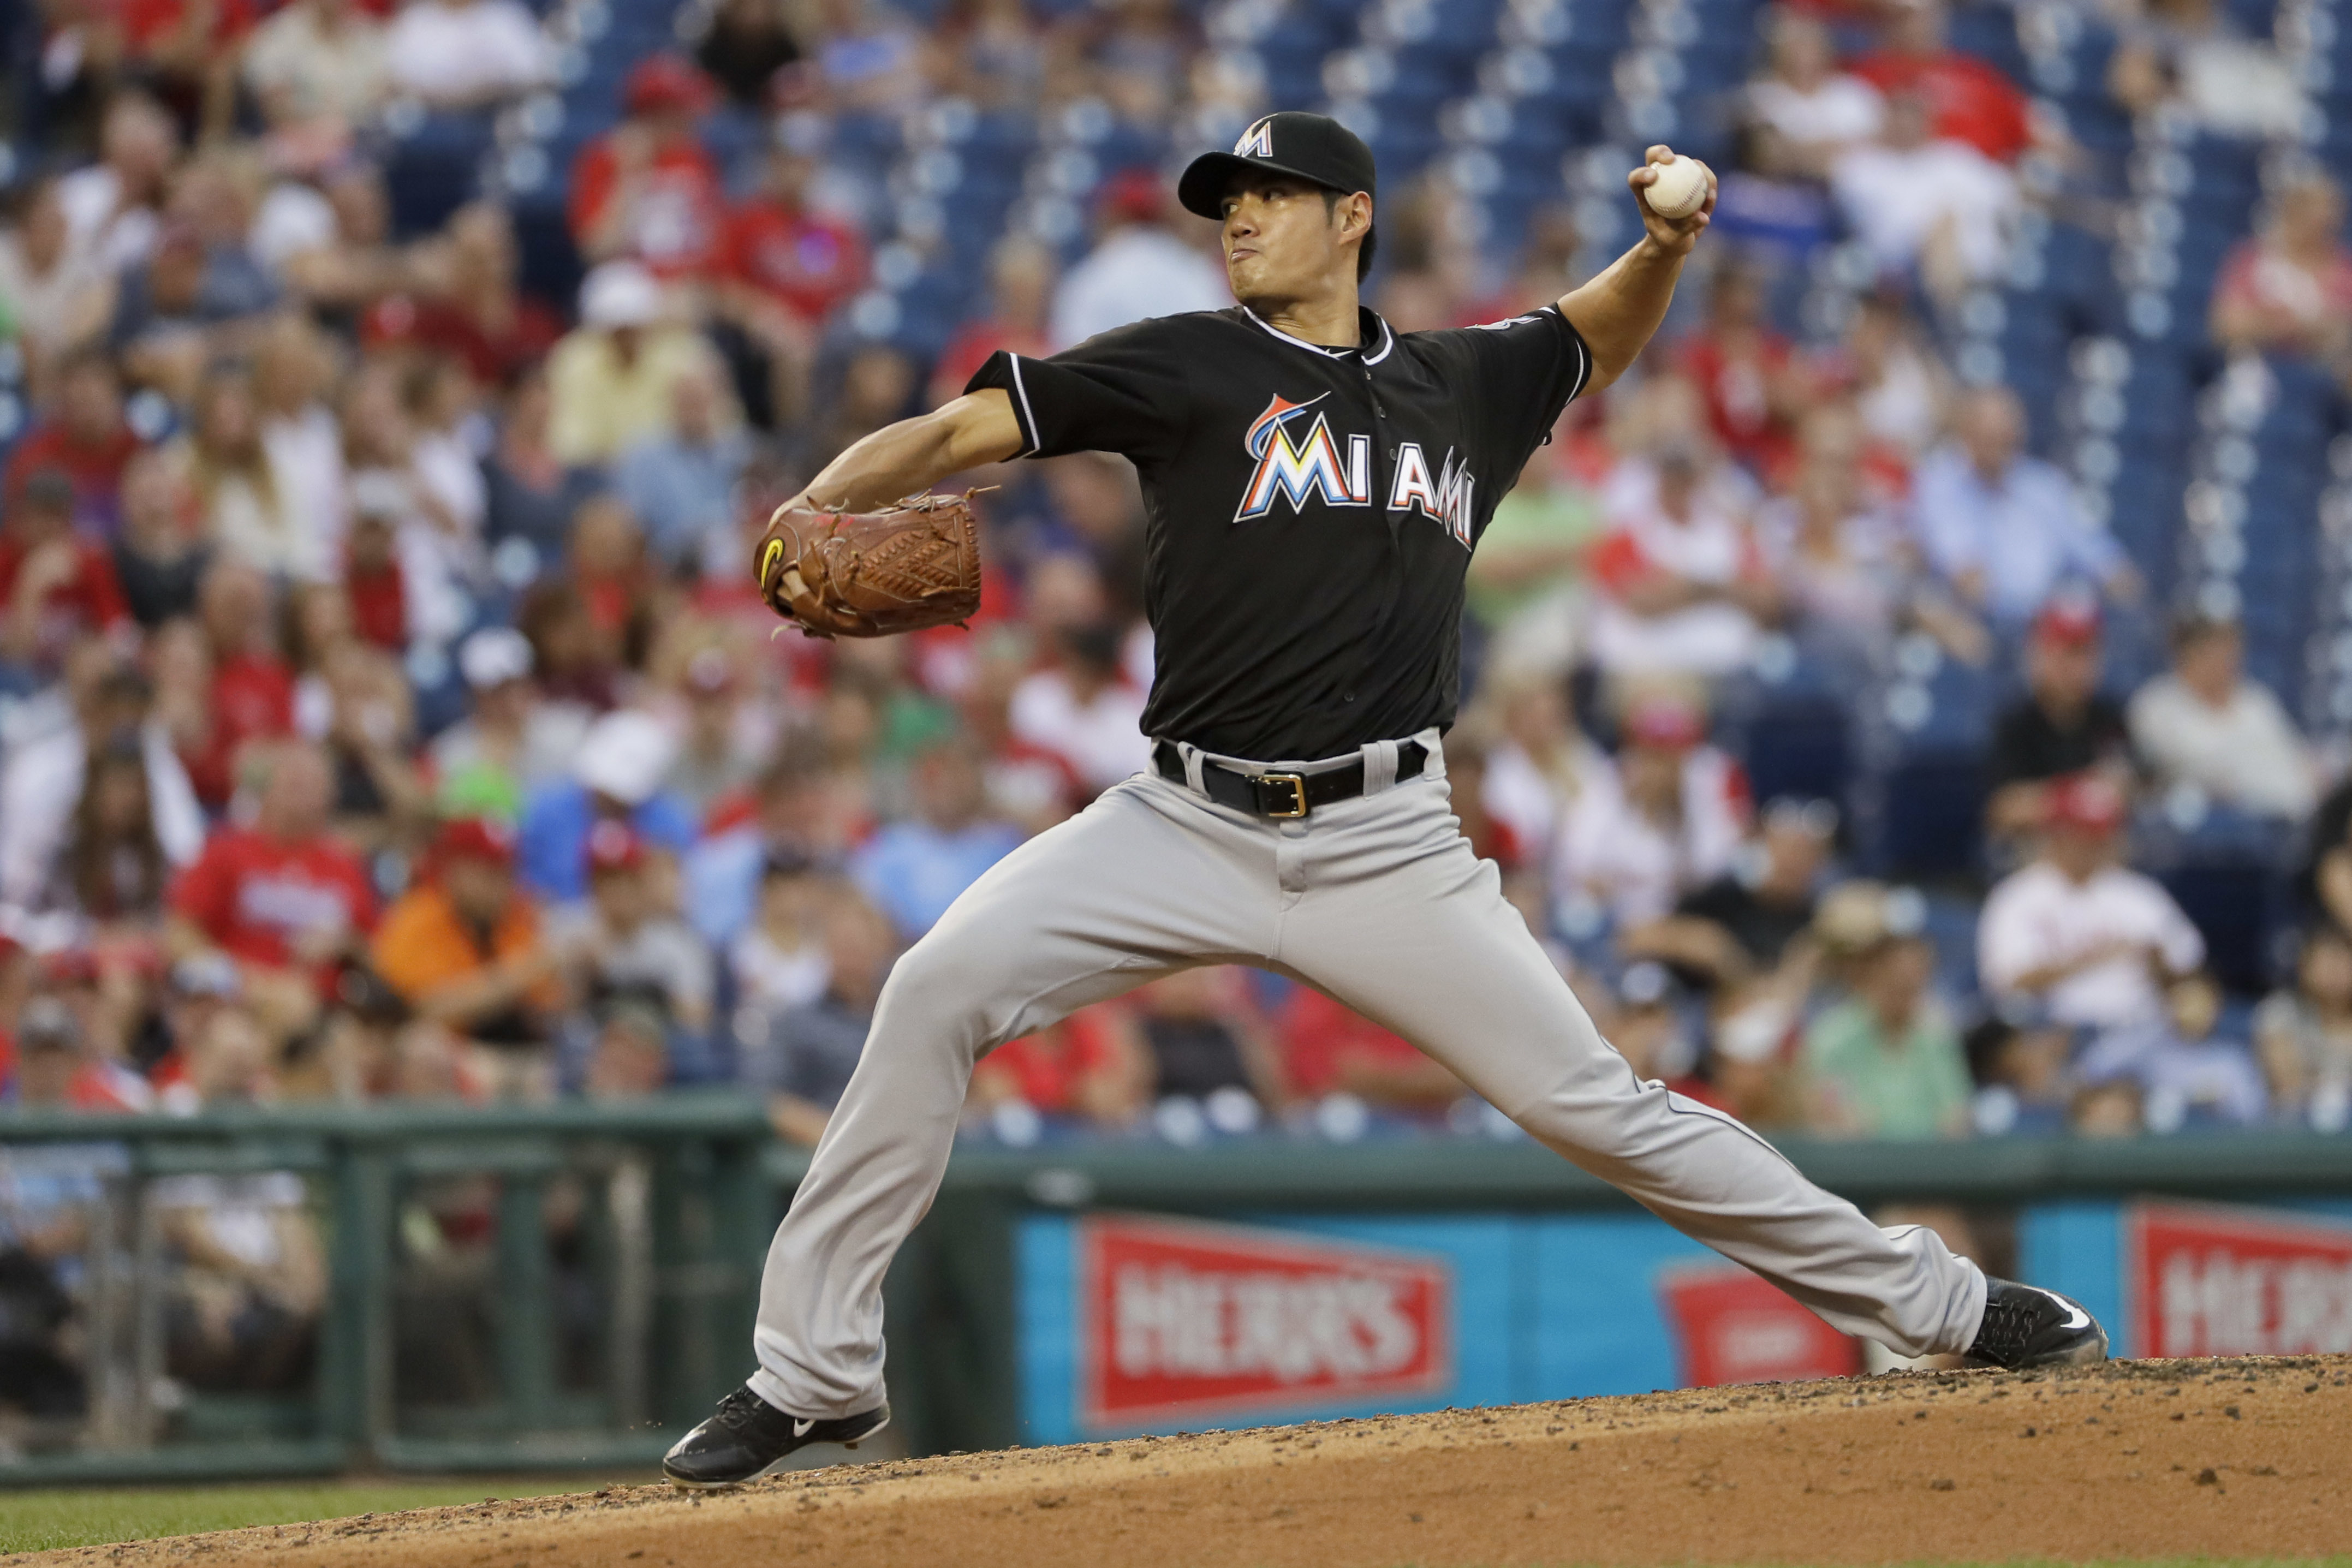 Miami Marlins' Wei-Yin Chen pitches during the third inning of a baseball game against the Philadelphia Phillies, Wednesday, July 20, 2016, in Philadelphia. (AP Photo/Matt Slocum)